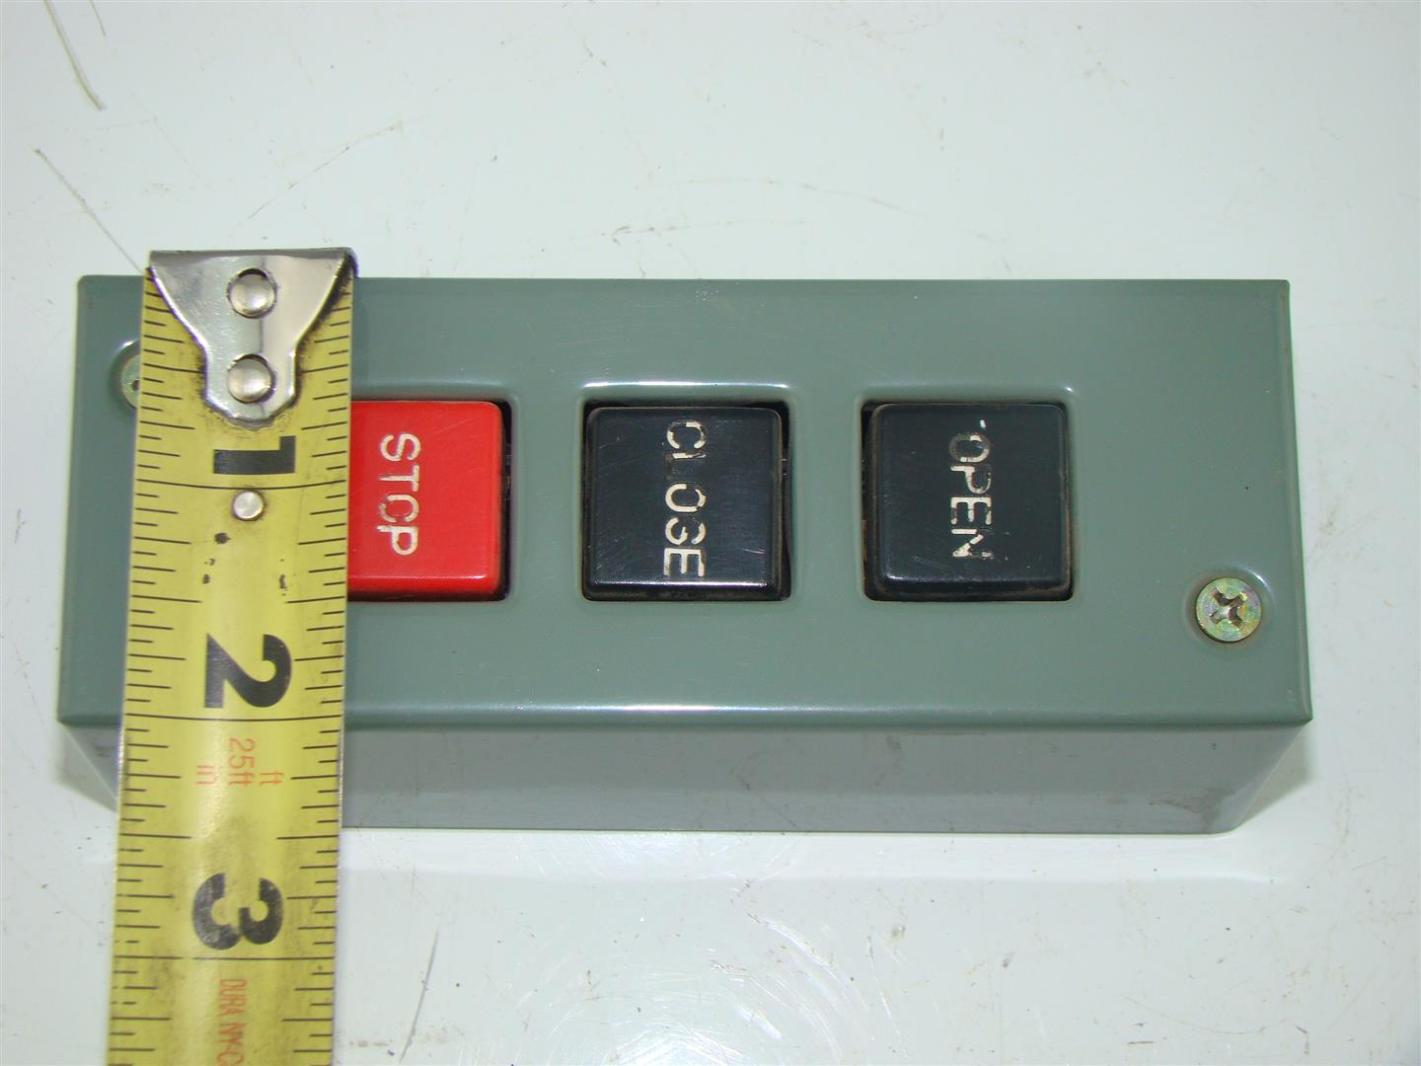 mmtc inc pbs 3 commercial garage door three button switch 5 amps joseph fazzio incorporated